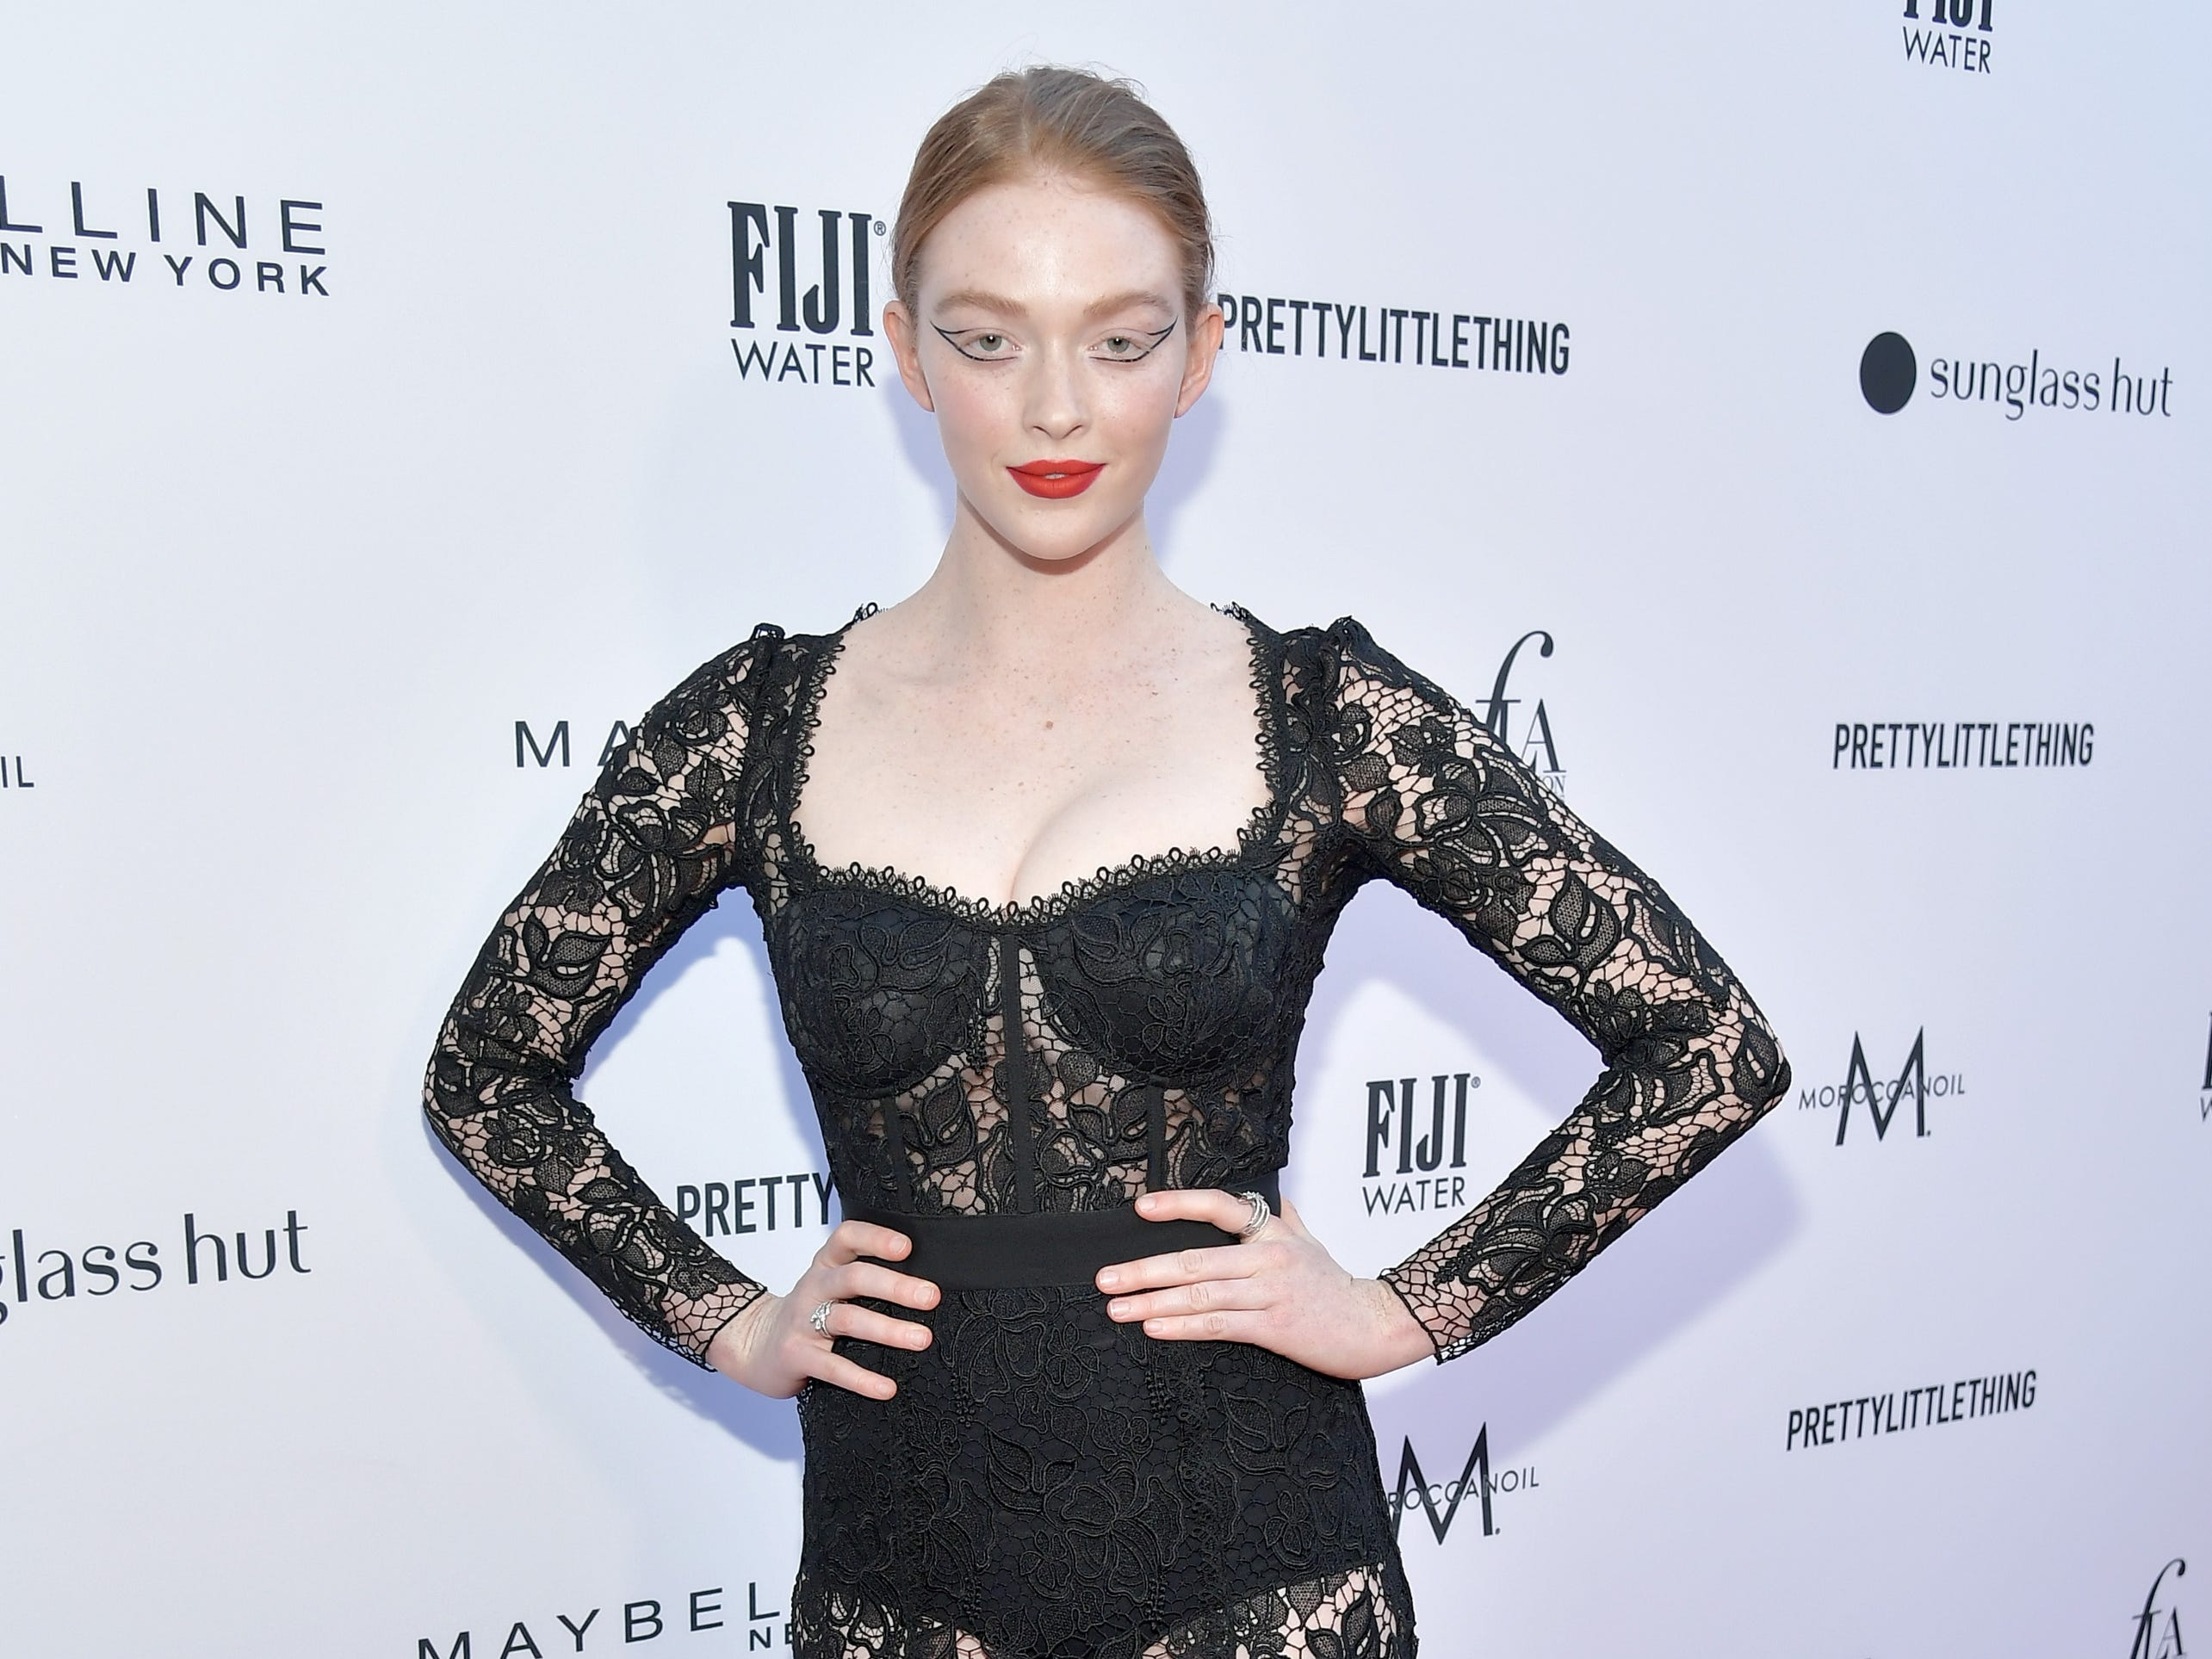 LOS ANGELES, CA - MARCH 17:  Larsen Thompson attends The Daily Front Row Fashion LA Awards 2019 on March 17, 2019 in Los Angeles, California.  (Photo by Neilson Barnard/Getty Images for Daily Front Row) ORG XMIT: 775308010 ORIG FILE ID: 1131295262